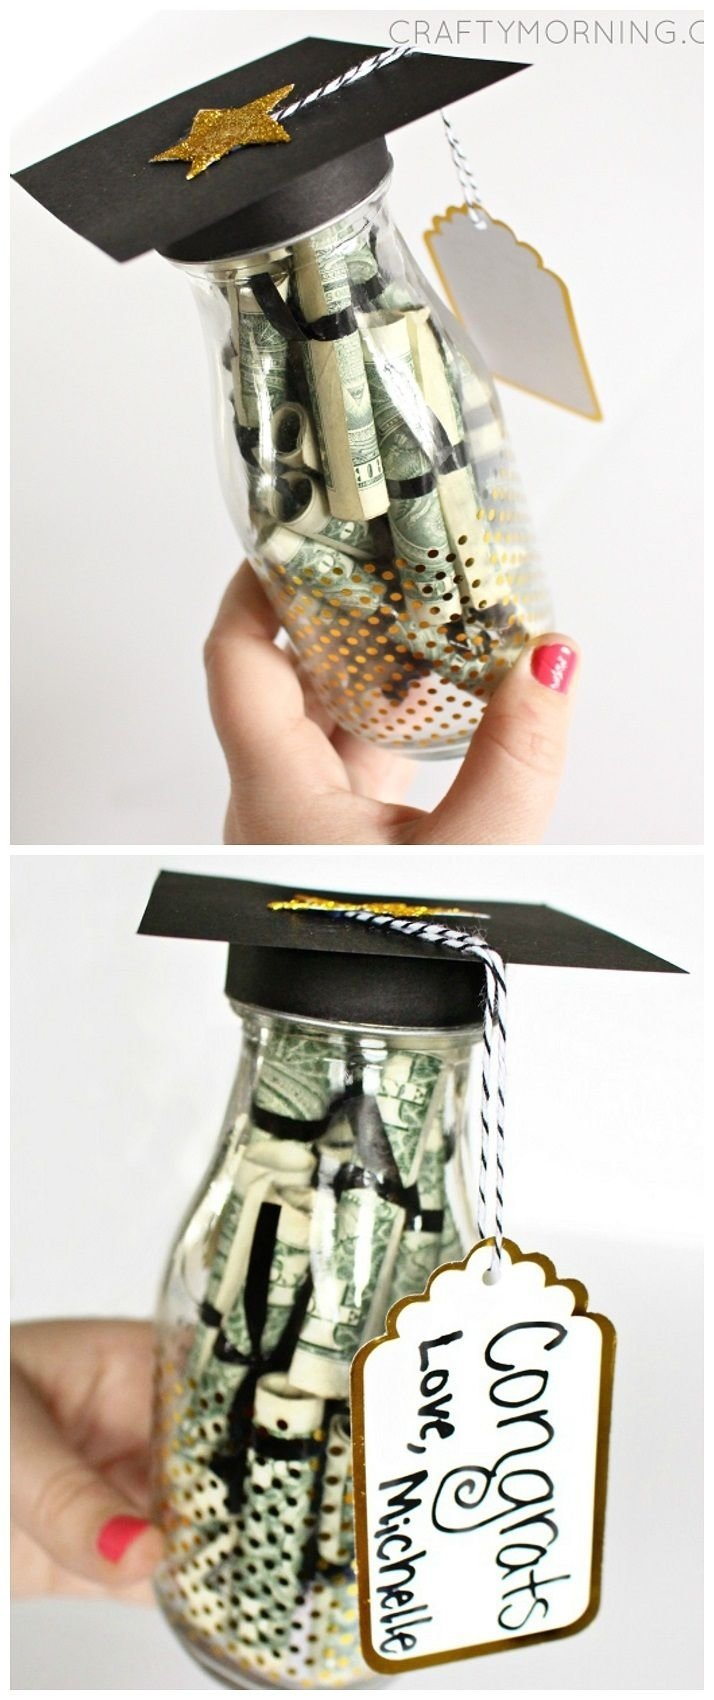 10 Amazing Gift Ideas For High School Graduate 272 best graduation gift ideas images on pinterest cute ideas